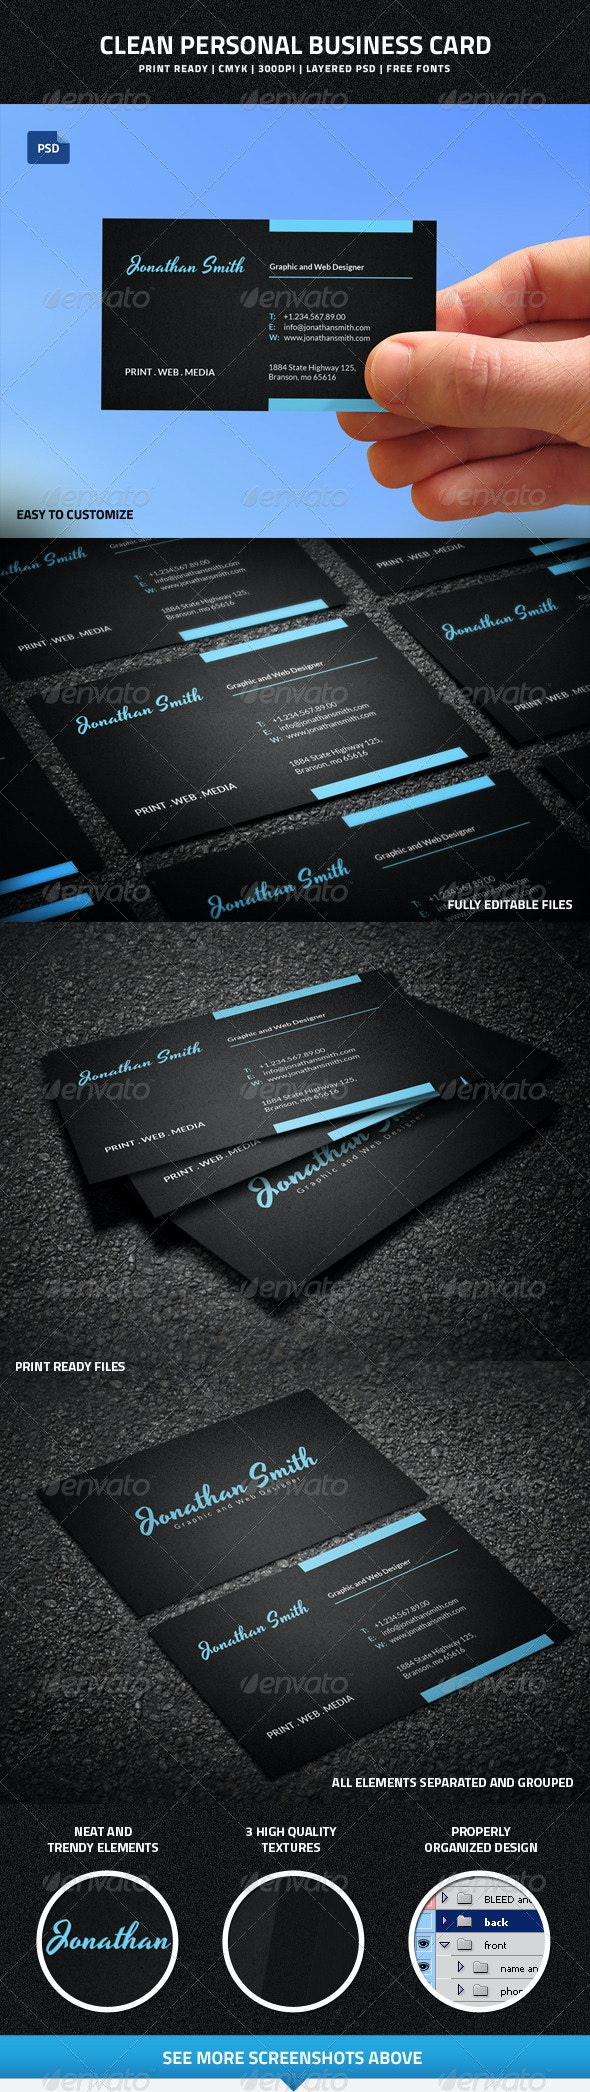 Clean Personal Business Card - 44 - Creative Business Cards